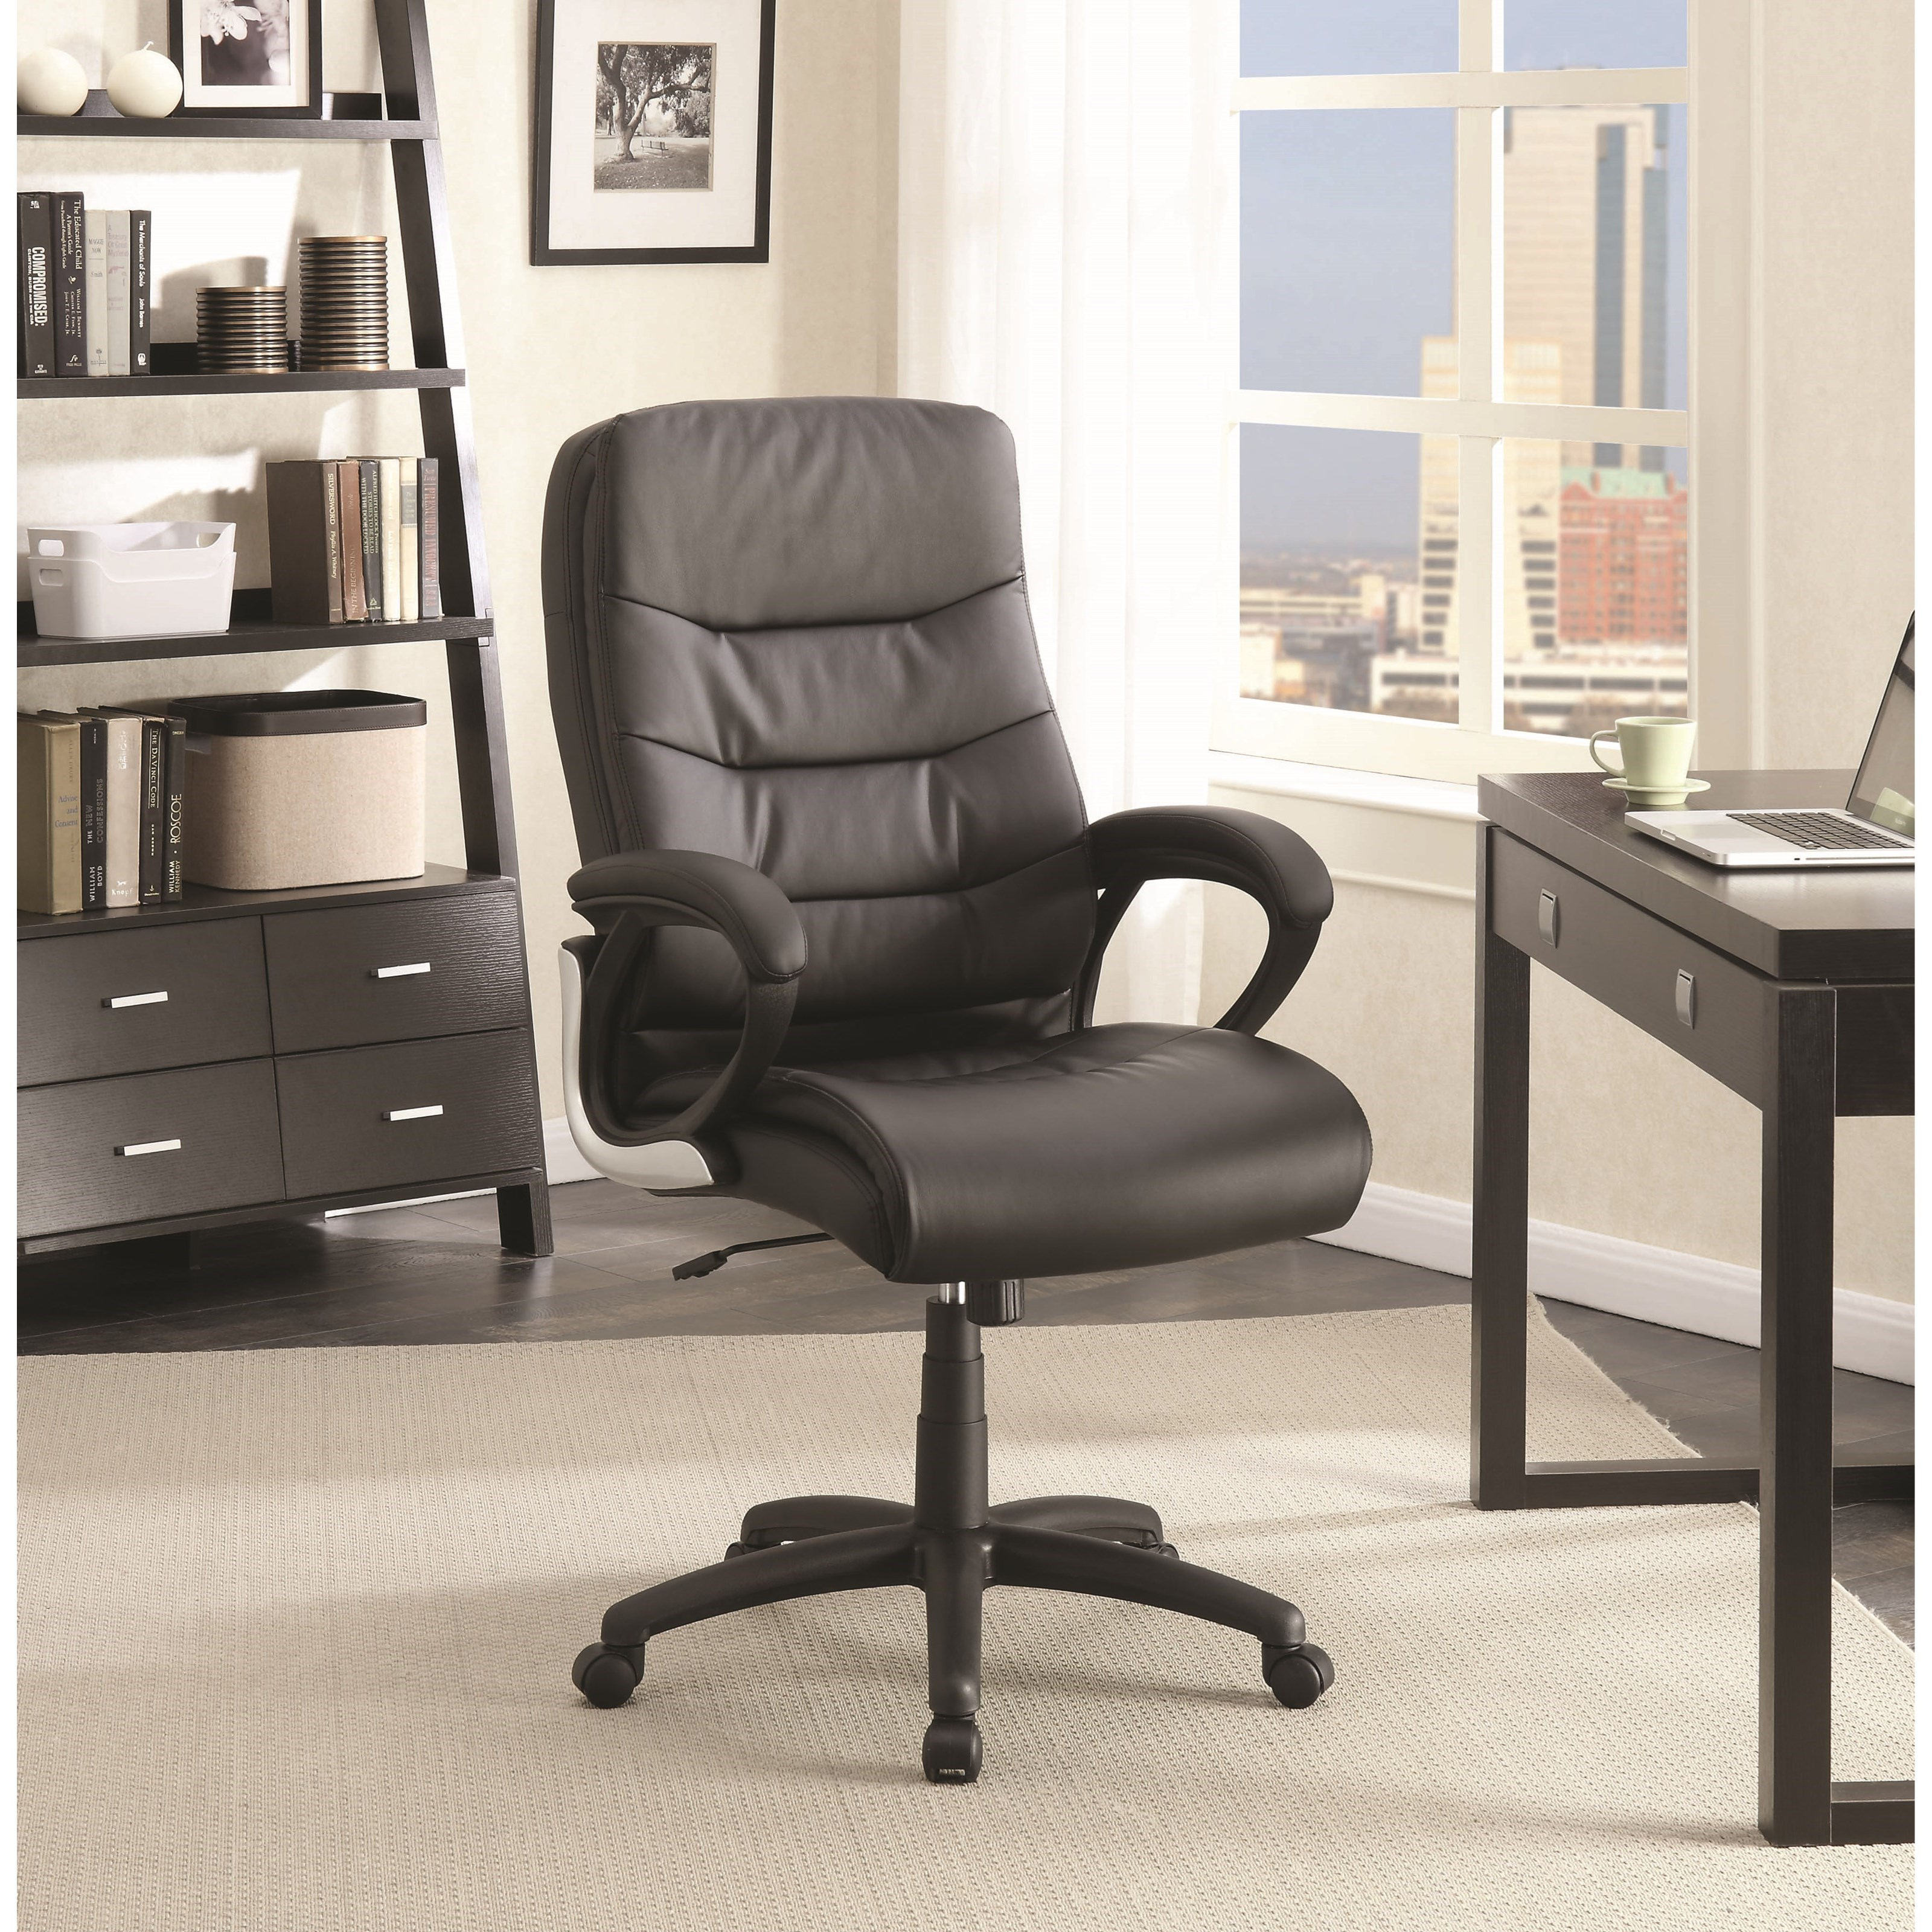 Coaster Office Chairs Office Chair - Item Number: 801456